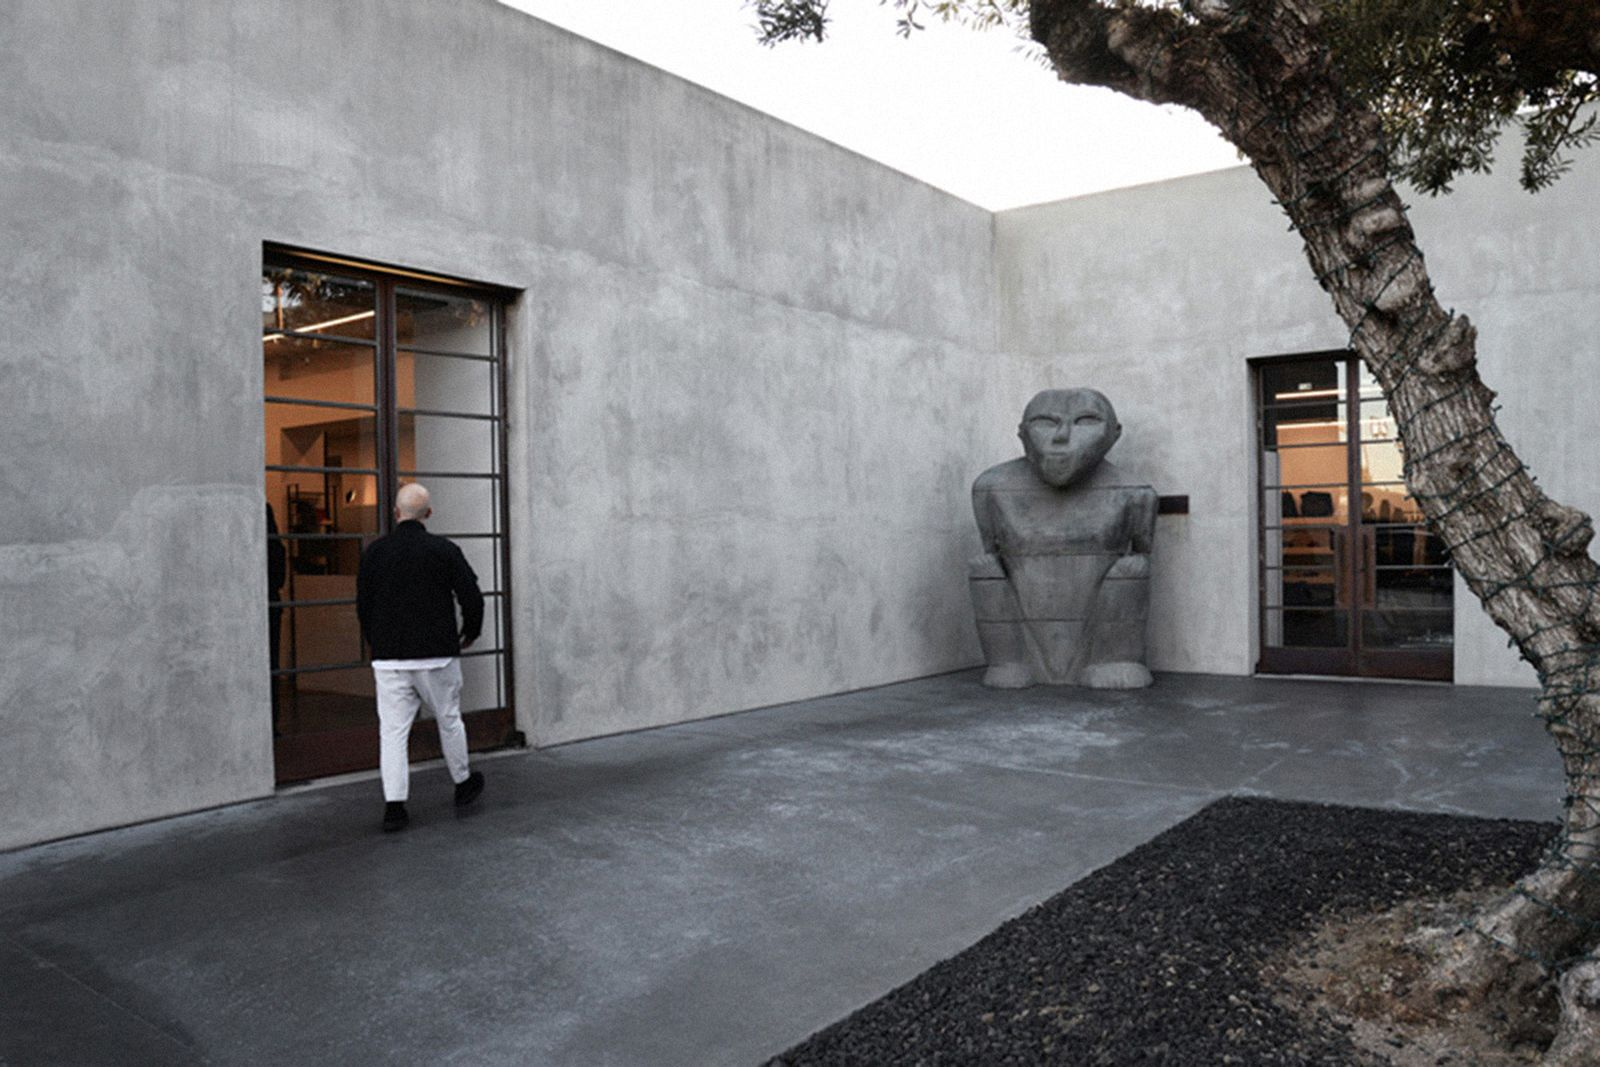 game-changers-best-store-interiors-changed-fashion-maxfield-la-03